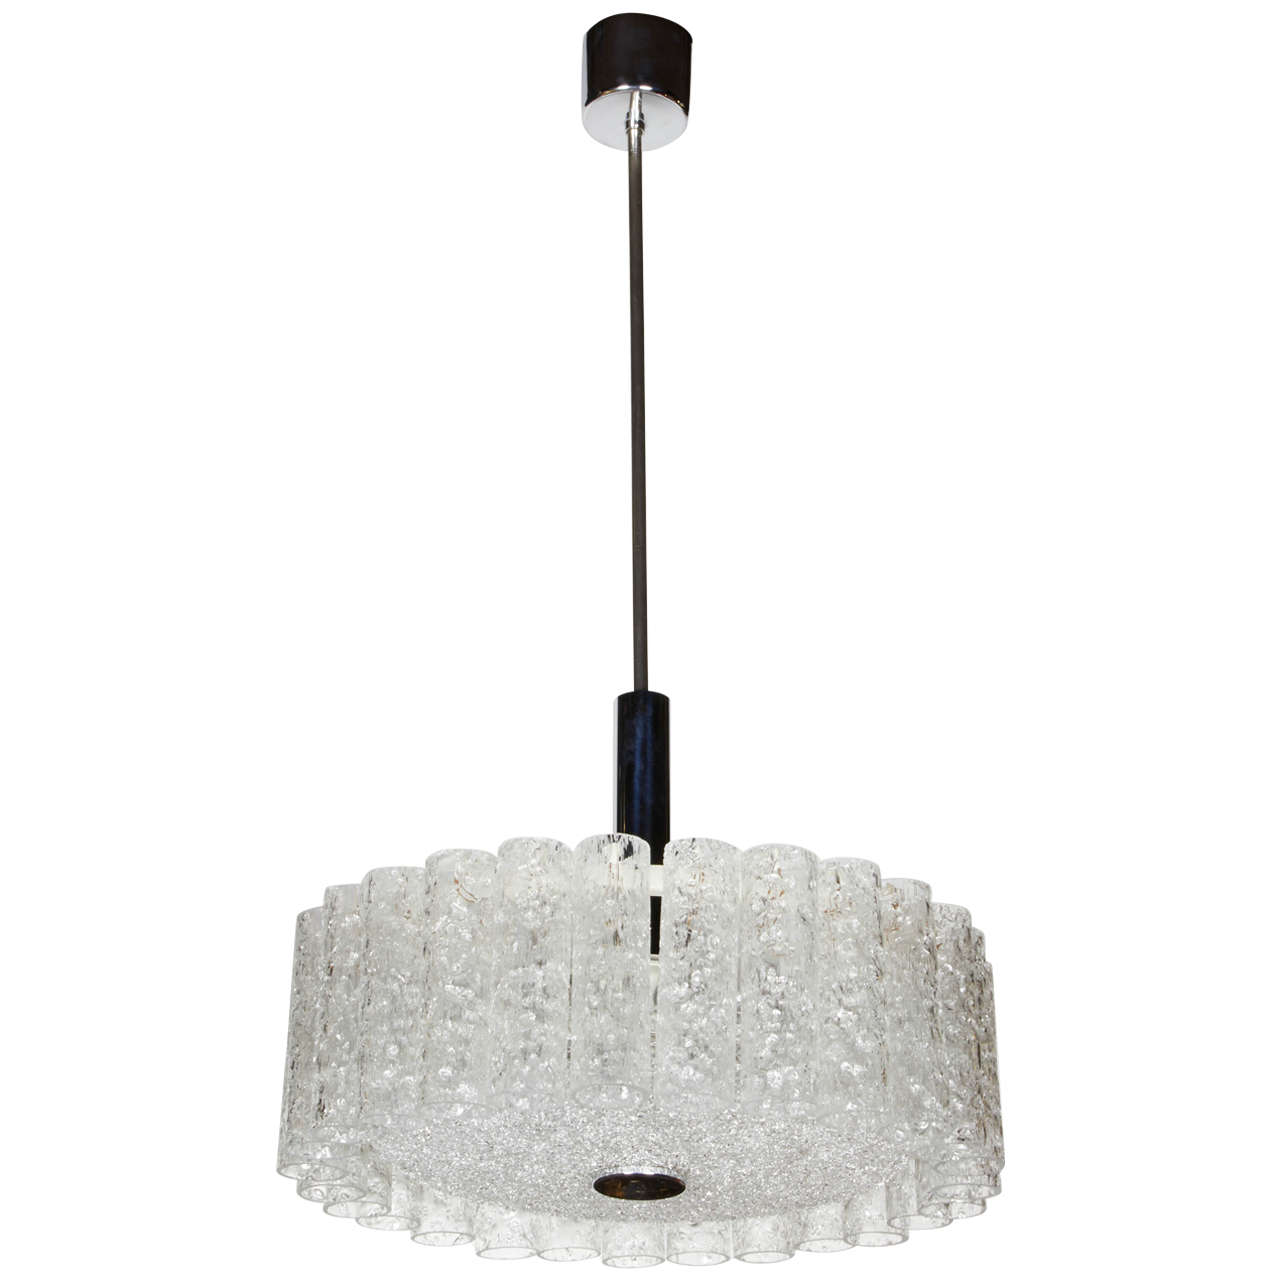 Elegant German Mid-Century Modern Textured Glass Chandelier For Sale